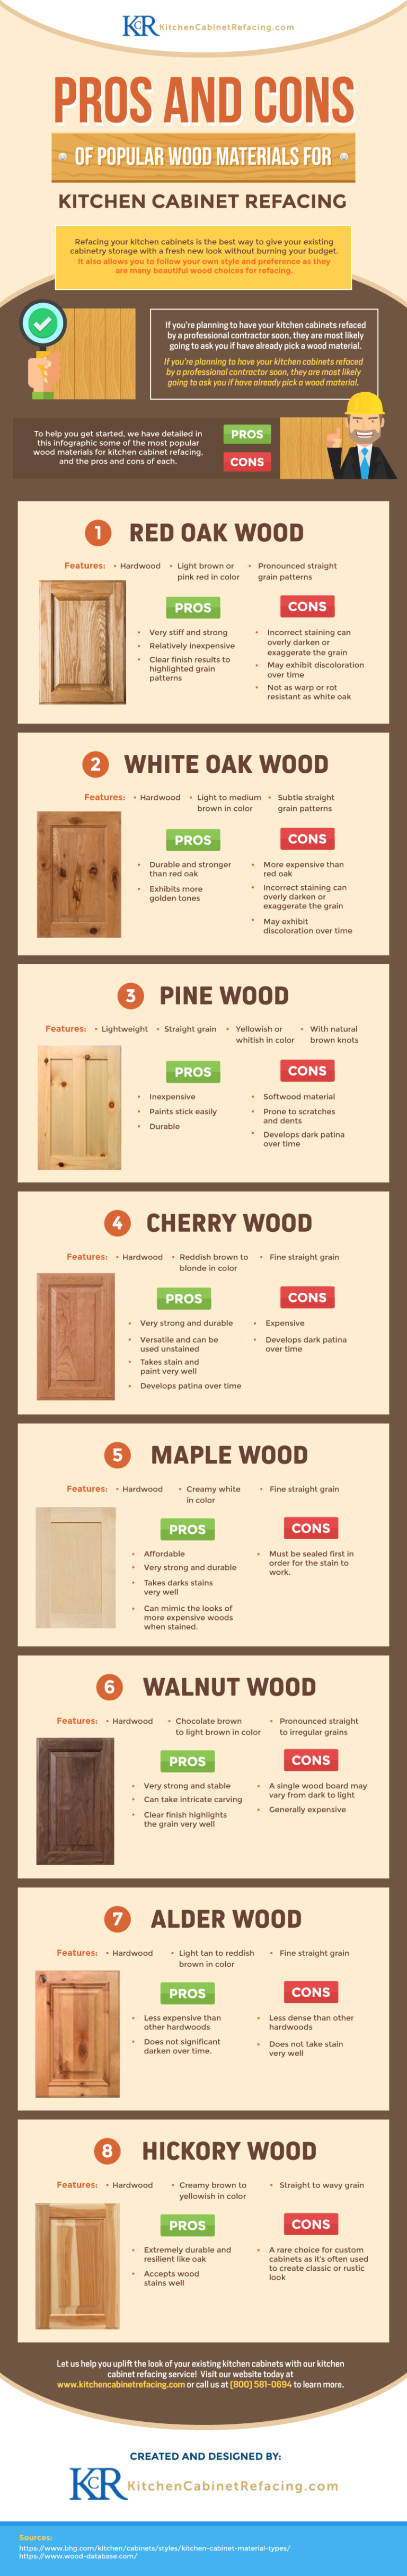 Pros & Cons of Popular Wood Materials For Kitchen Cabinet Refacing. Home staging tips by Staged4more School of Home Staging